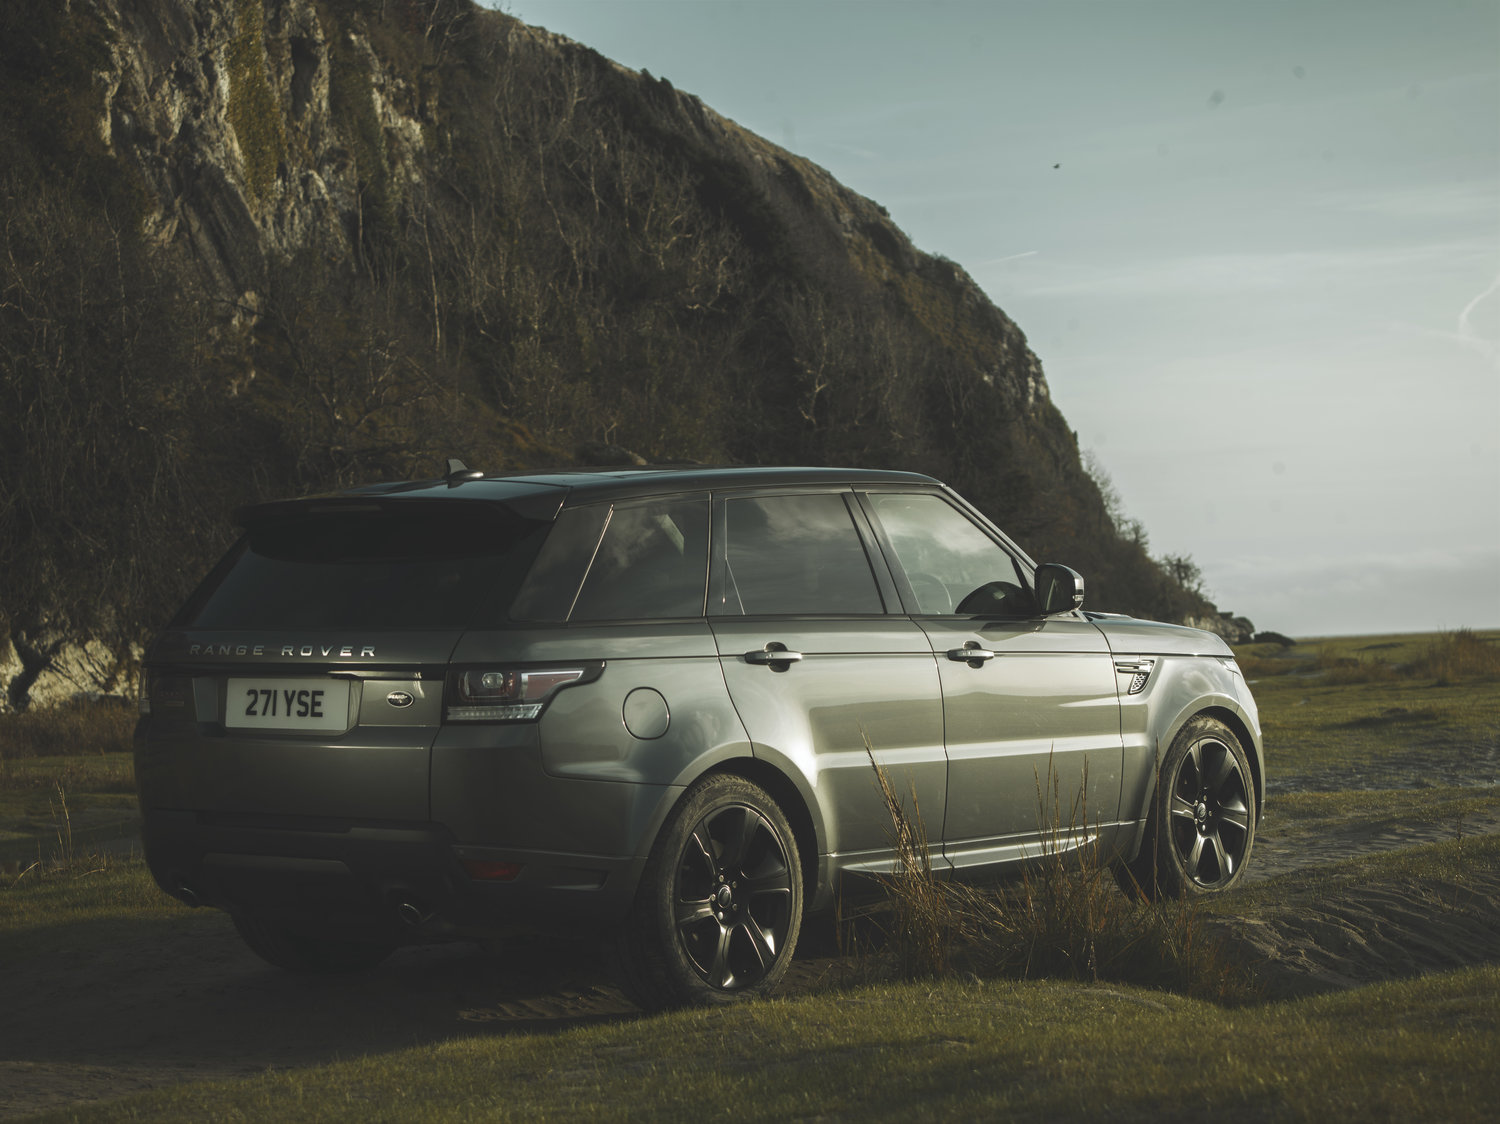 Range Rover Sport tyre tracks on the beach sand. Commercial advertising automotive photography. off road in the Lake District, Cumbria for Land Rover. Packshot. Highlighting the Great British Outdoors, craftmanship and heritage brands